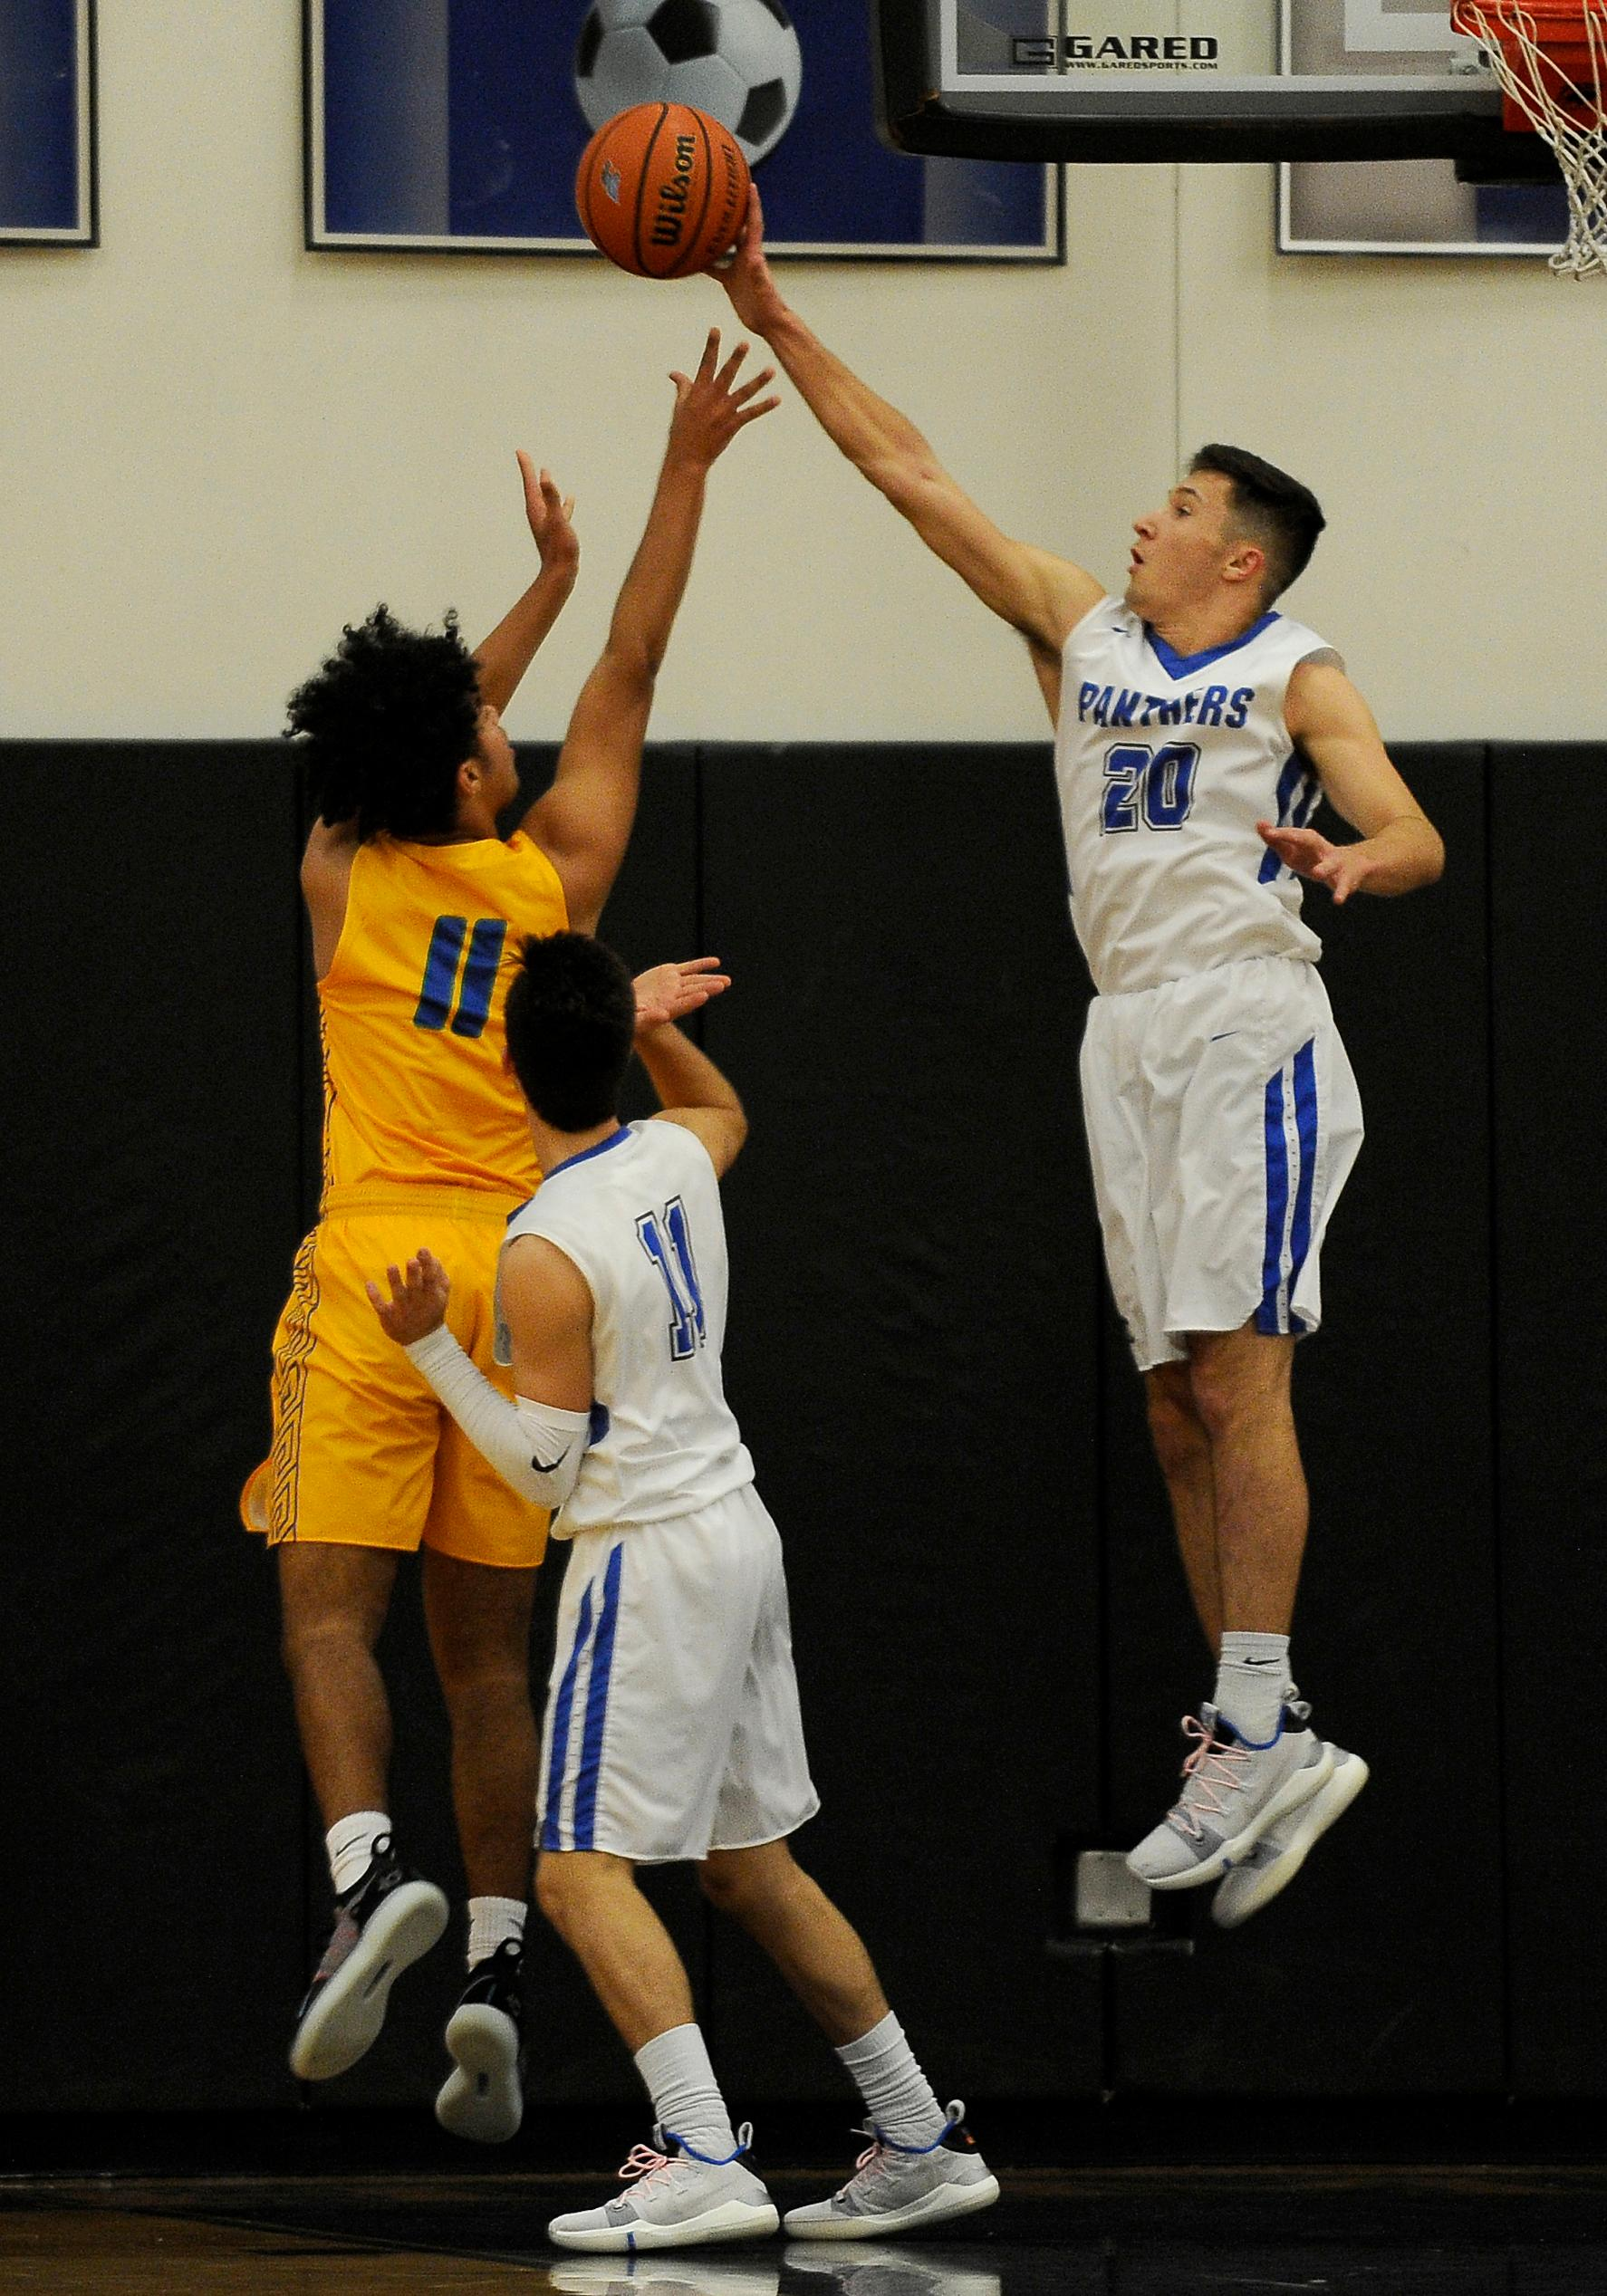 Andy Atkinson / Mail Tribune South's Gio Bottero blocks the shoot from Aloha's Timothy Davis during the 2nd quarter.